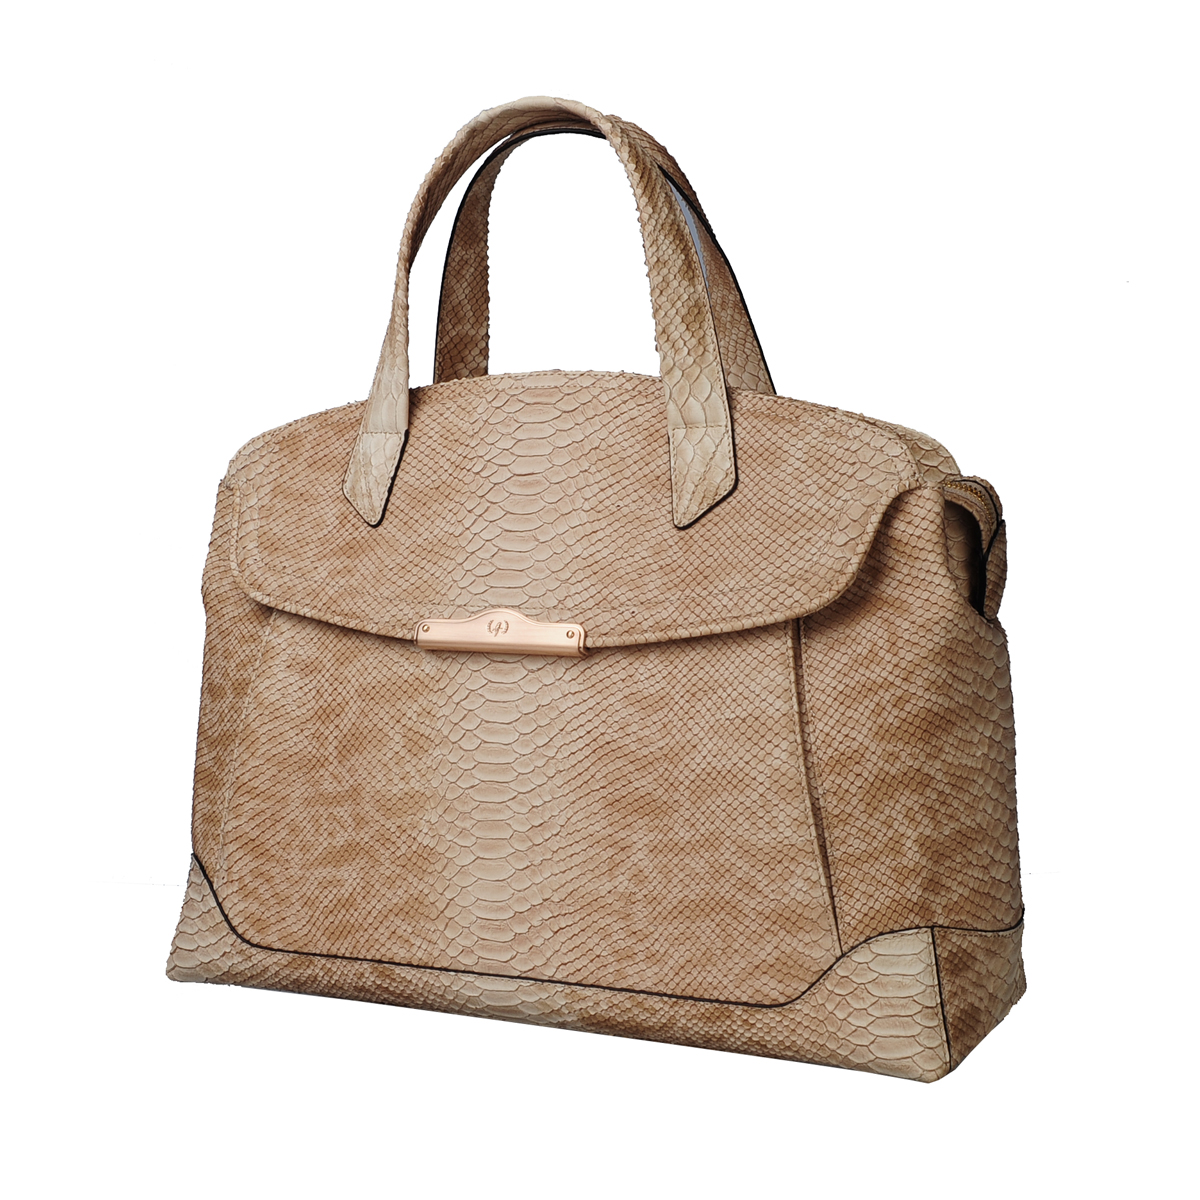 [TOTE] MONICA (WILD SNAKE / NATURAL)